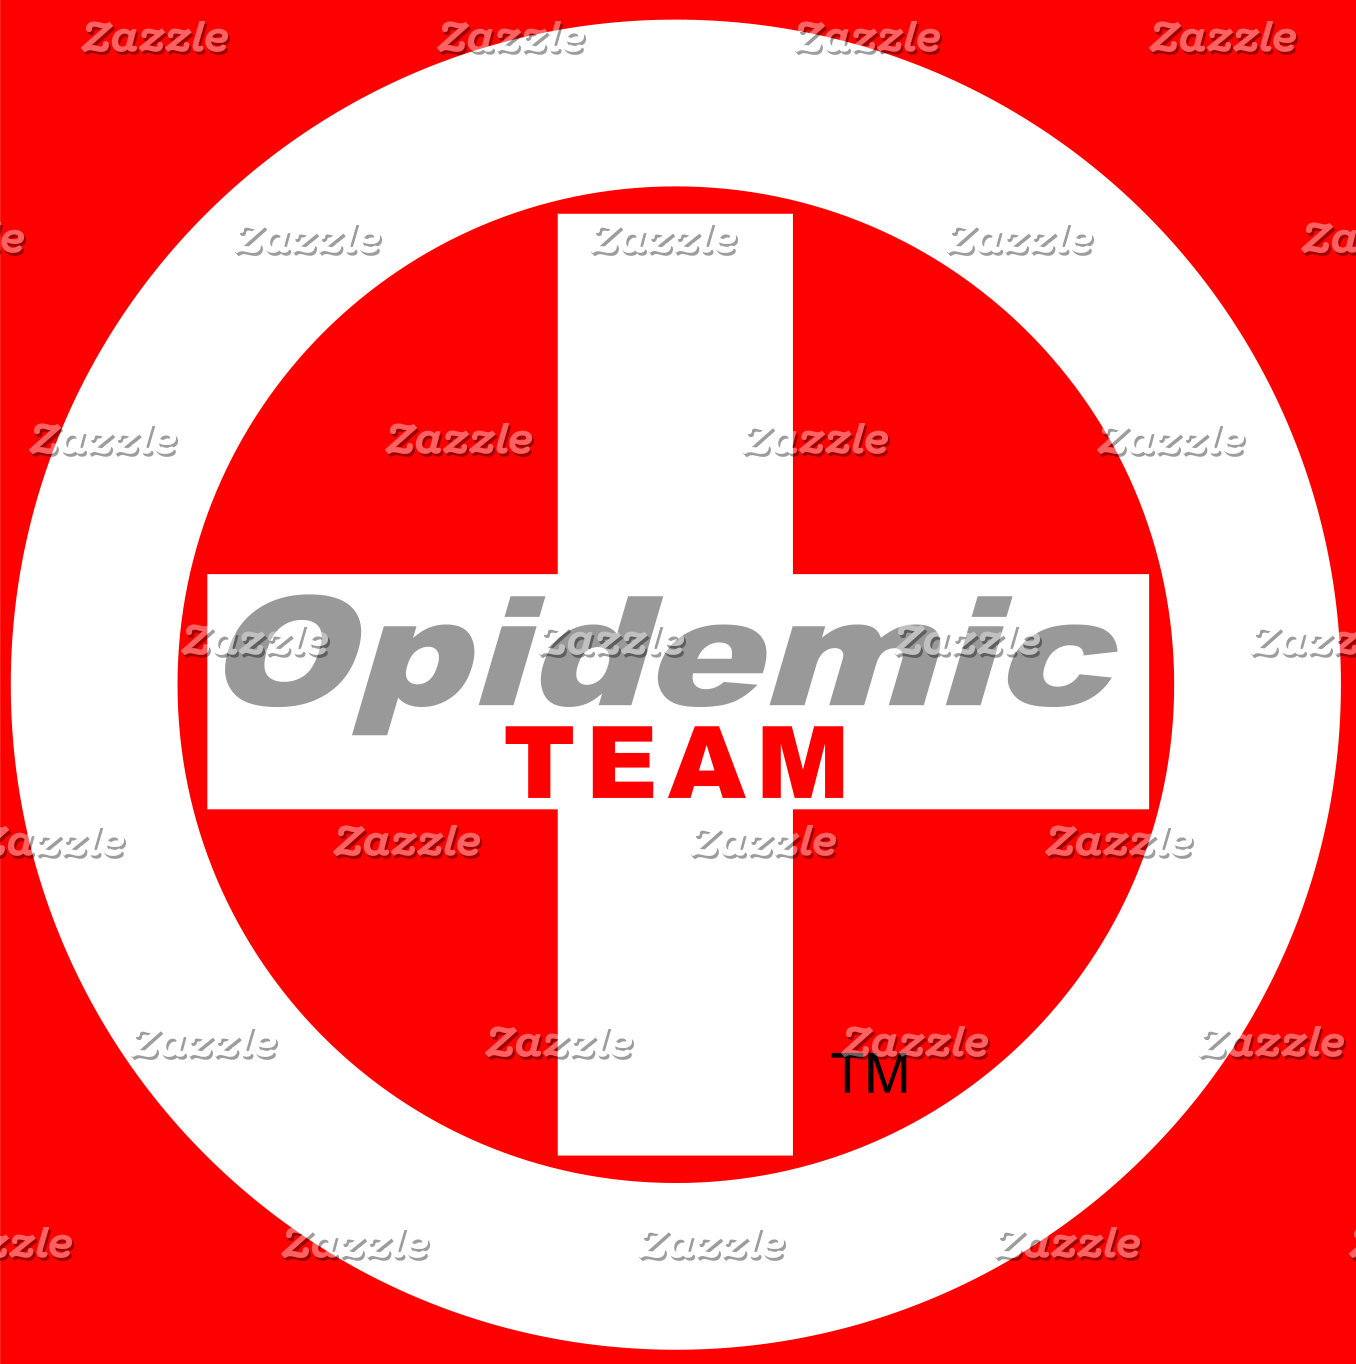 Opidemic Team